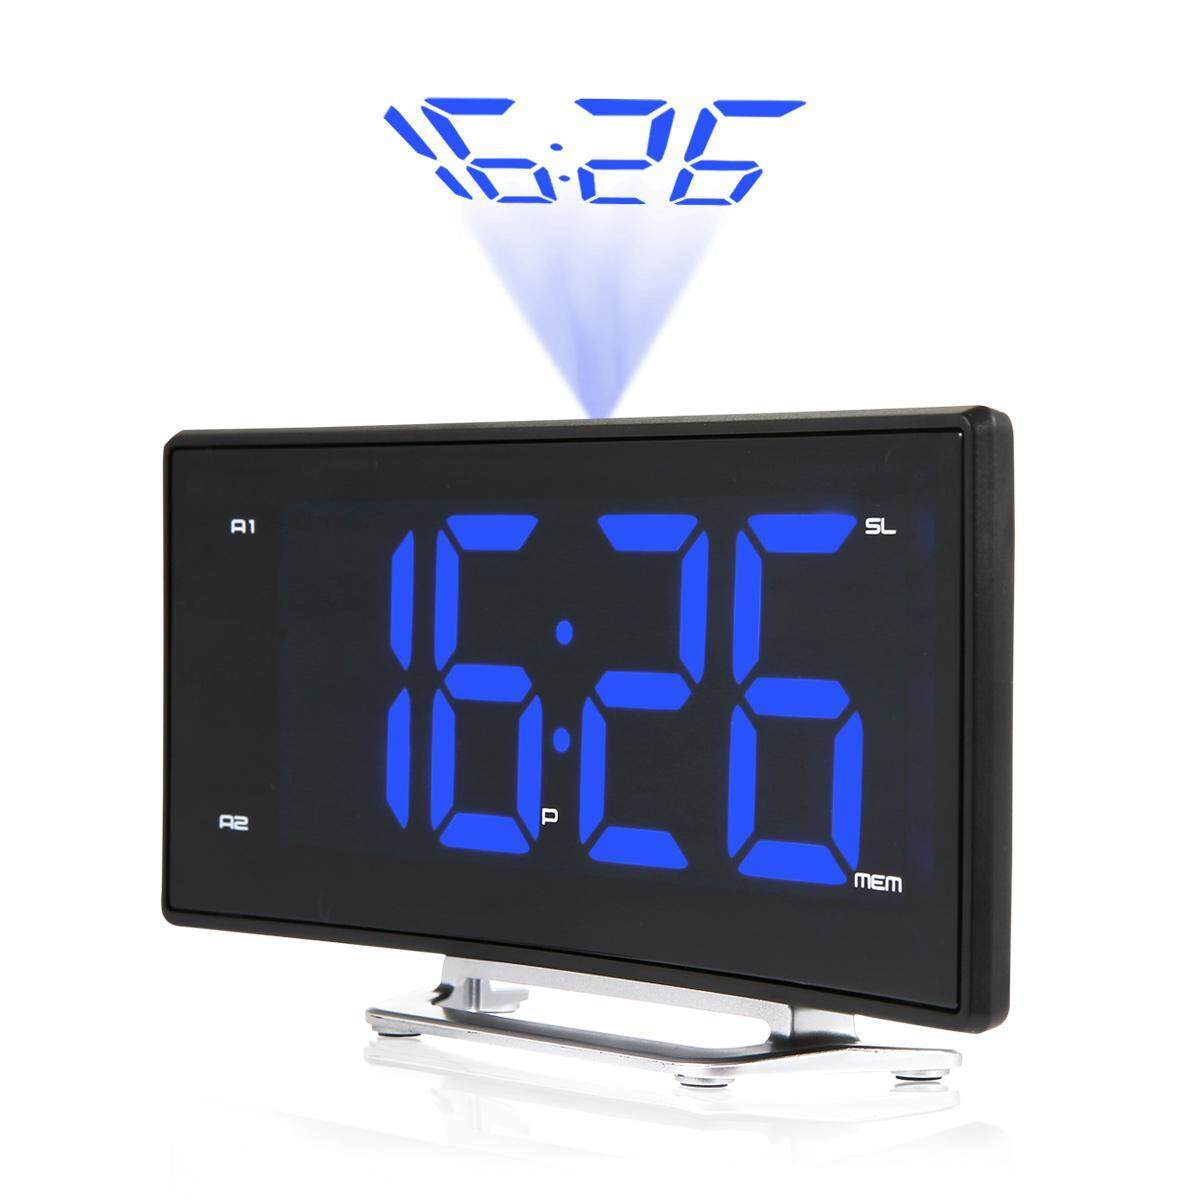 Aolvo Projection Alarm Clock, Digital Alarm Clock with FM Radio, USB Charging Port, Dual Alarms, Snooze Function, Large LED Curved-Screen with Dimmer